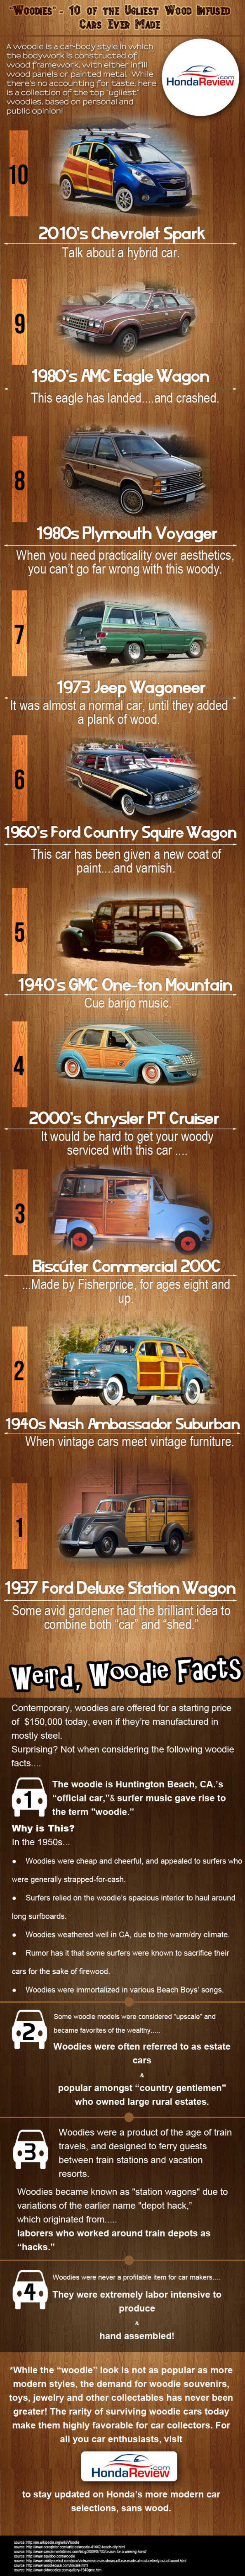 """WOODIES""-10 of the ugliest wood infused cars ever made Infographic"